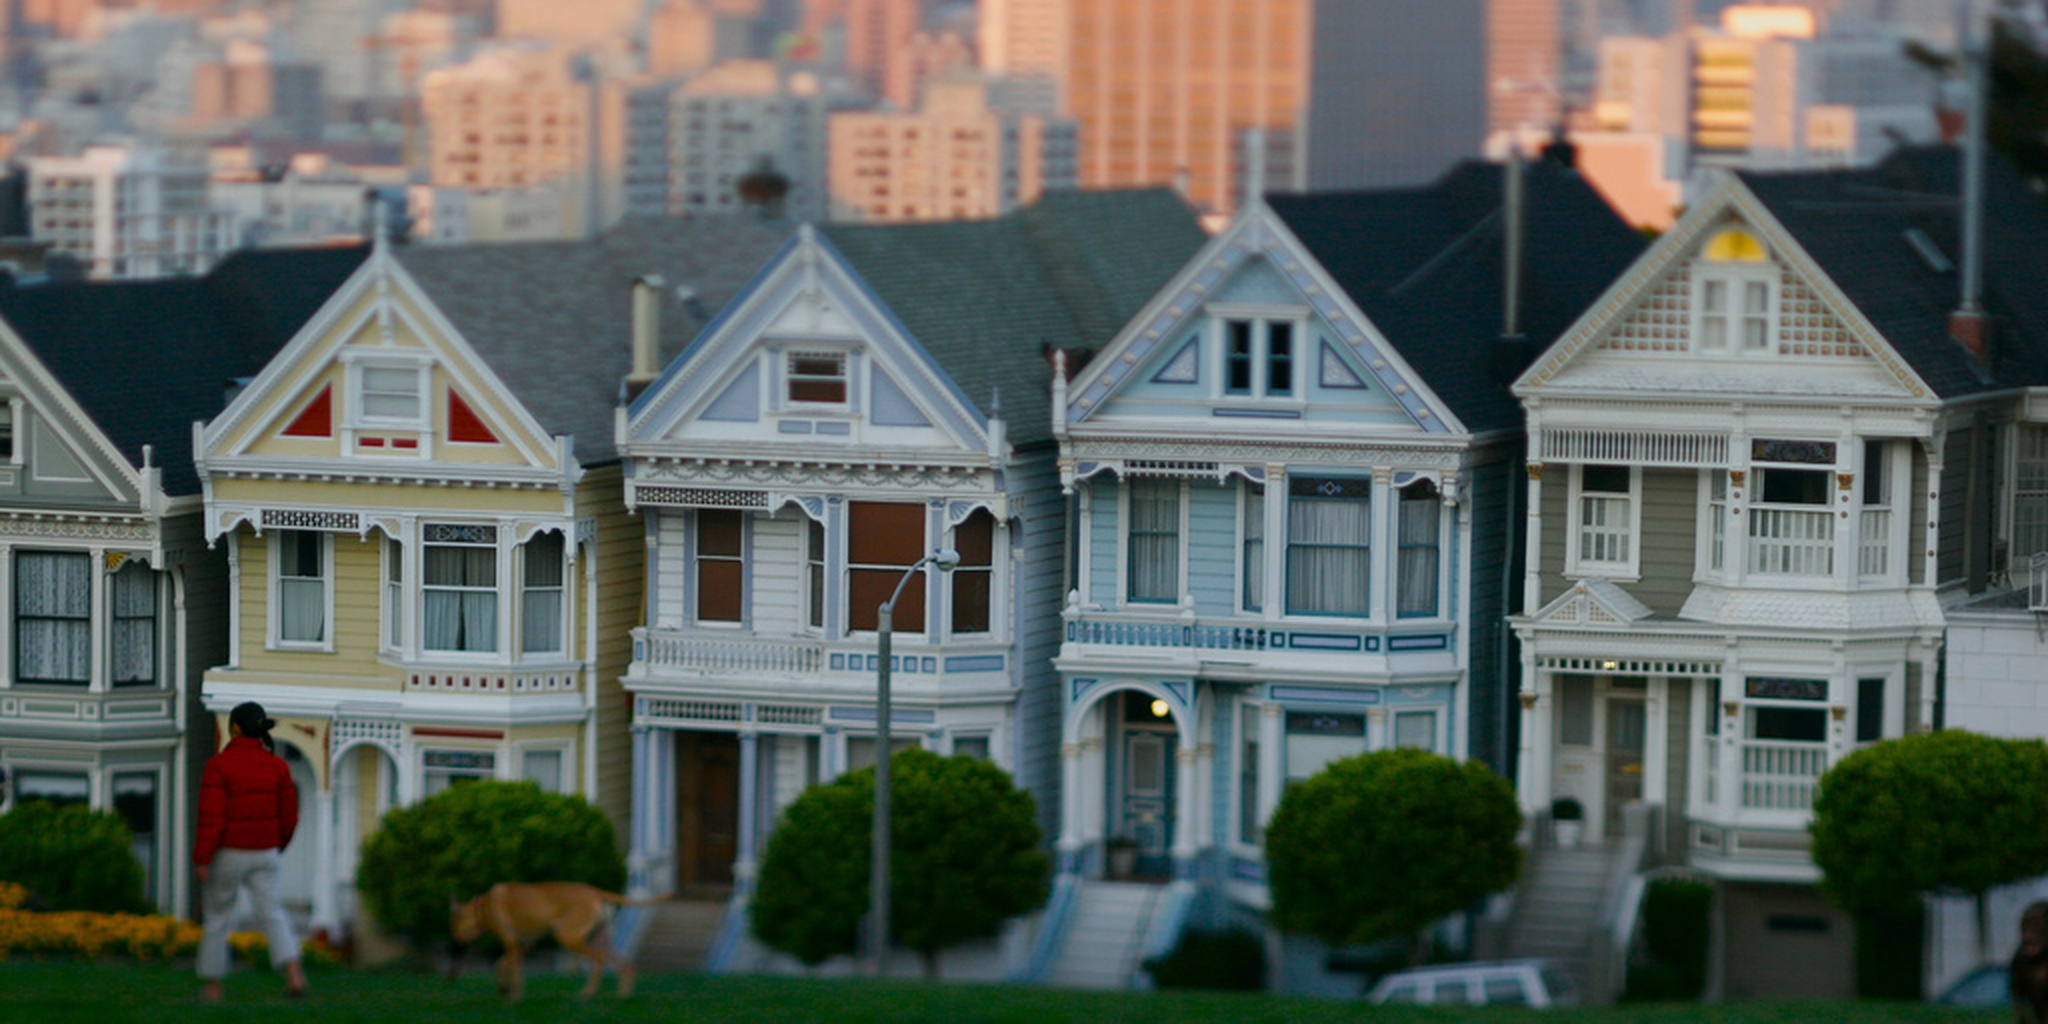 painted ladies from Full House